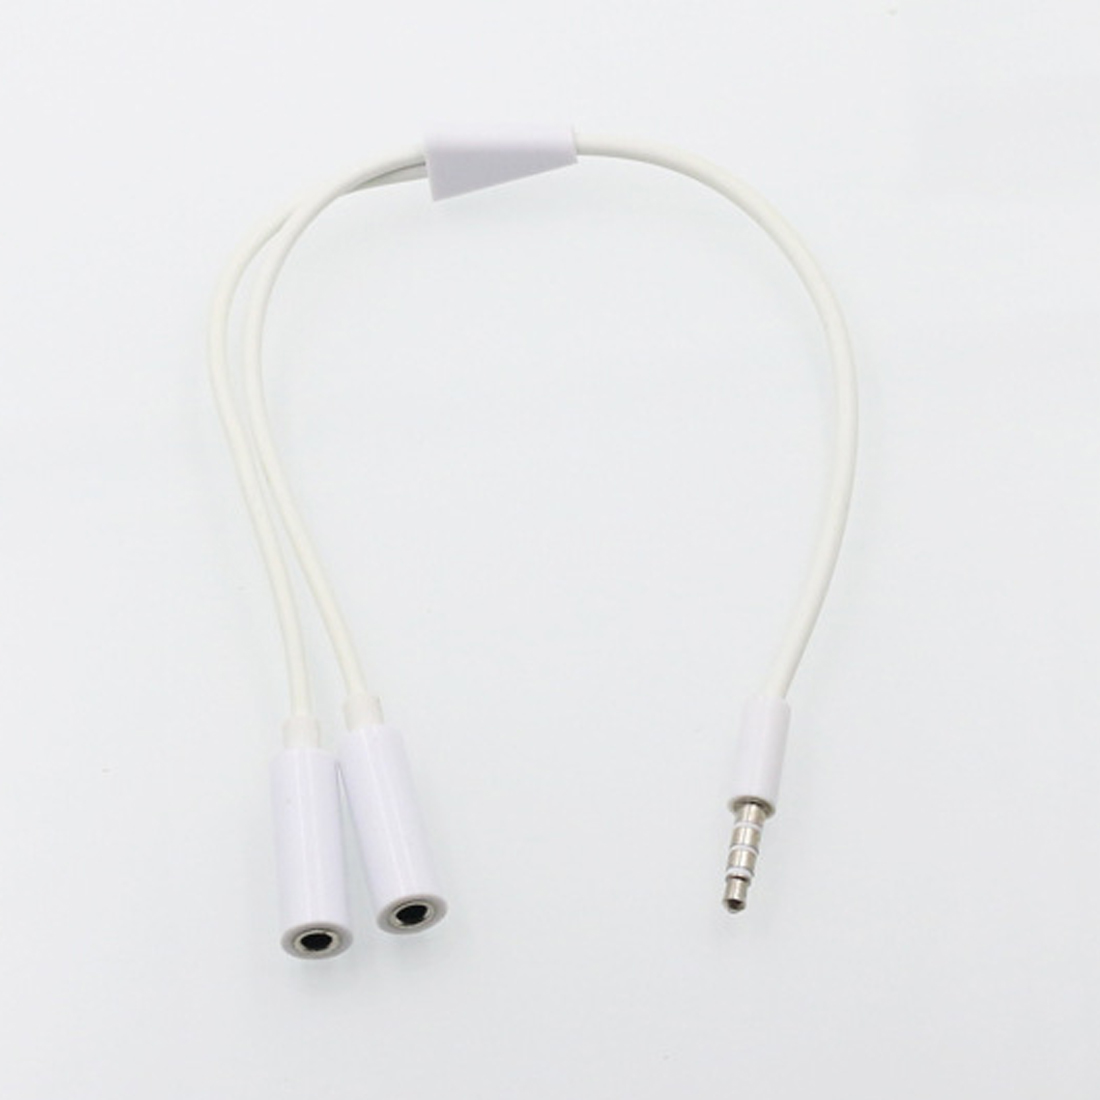 White 3 5mm Audio Splitter Cable Earphone Headphone